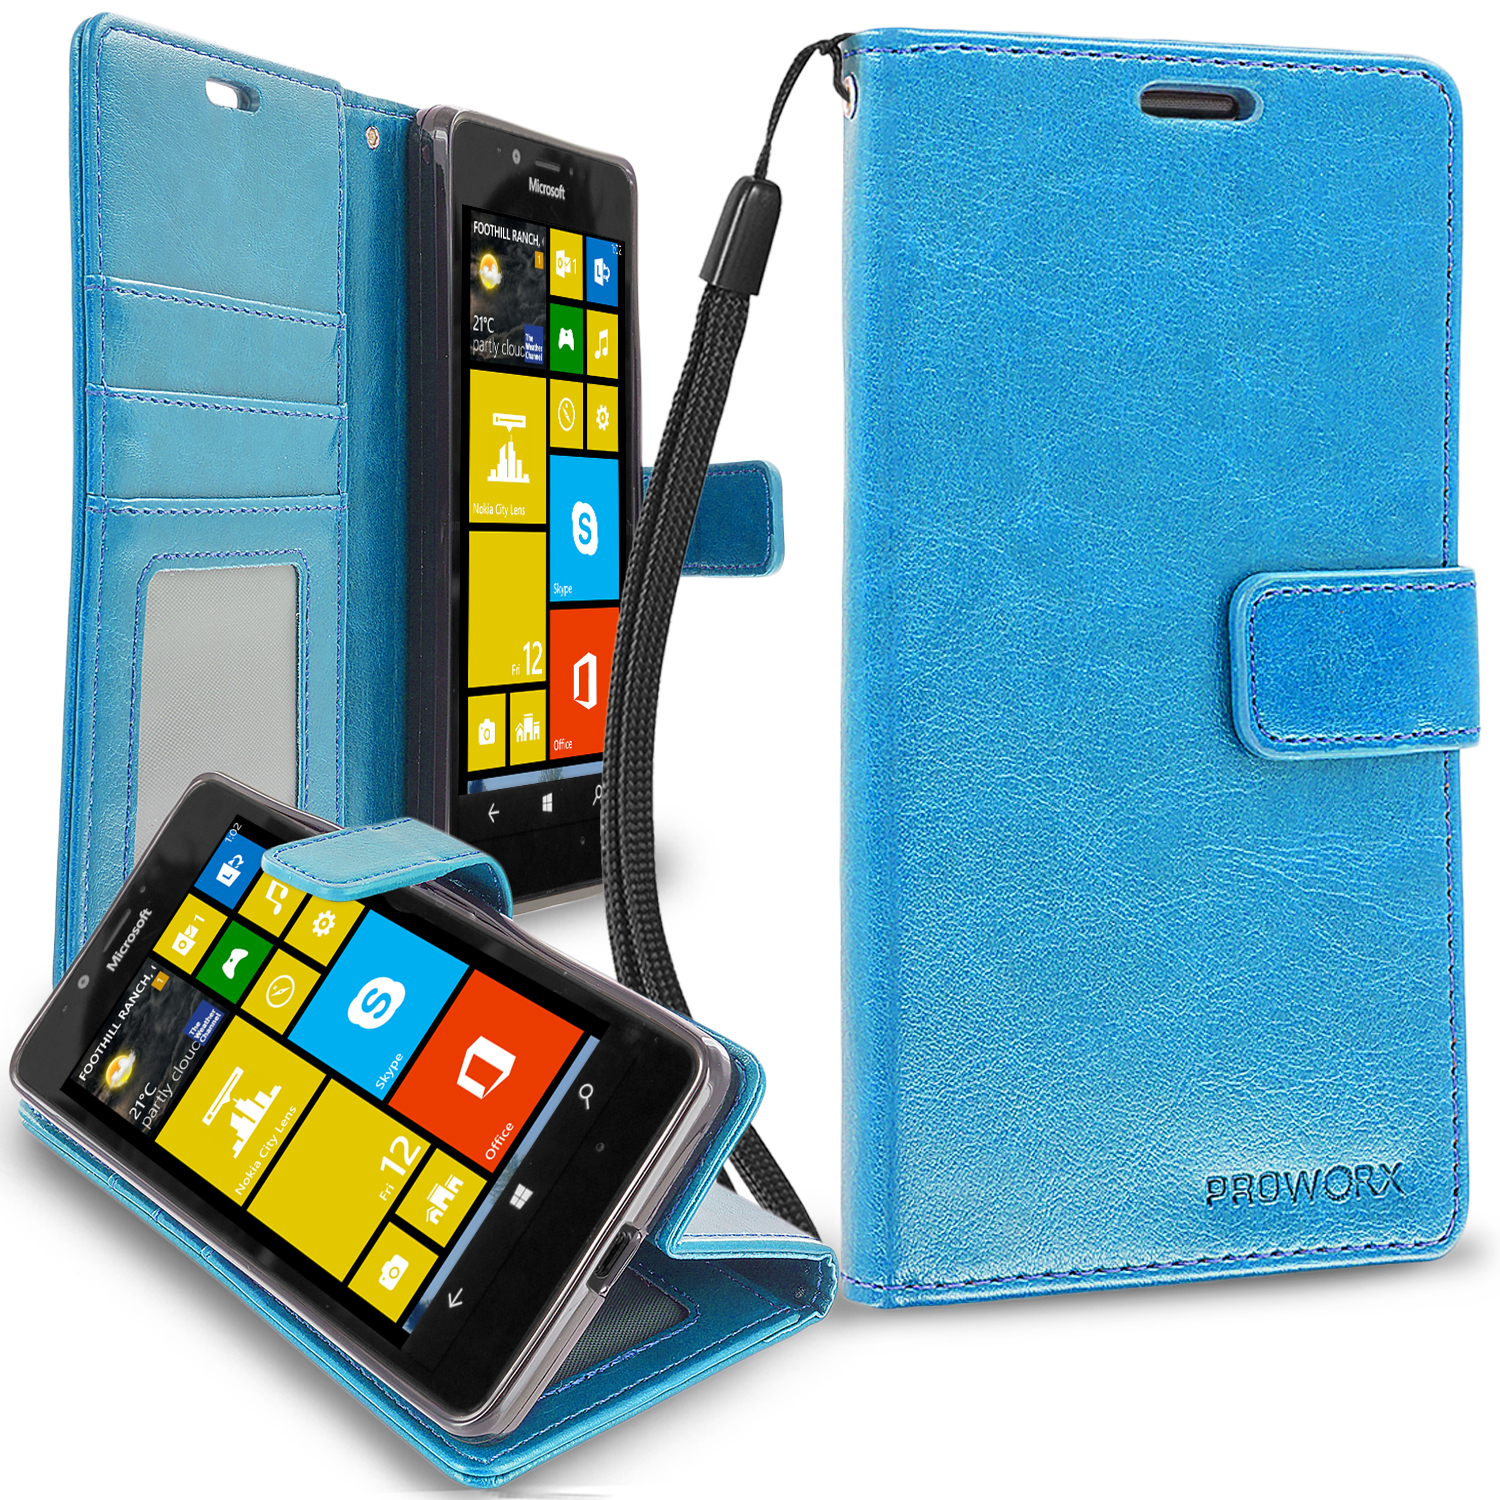 Microsoft Lumia 950 Baby Blue ProWorx Wallet Case Luxury PU Leather Case Cover With Card Slots & Stand